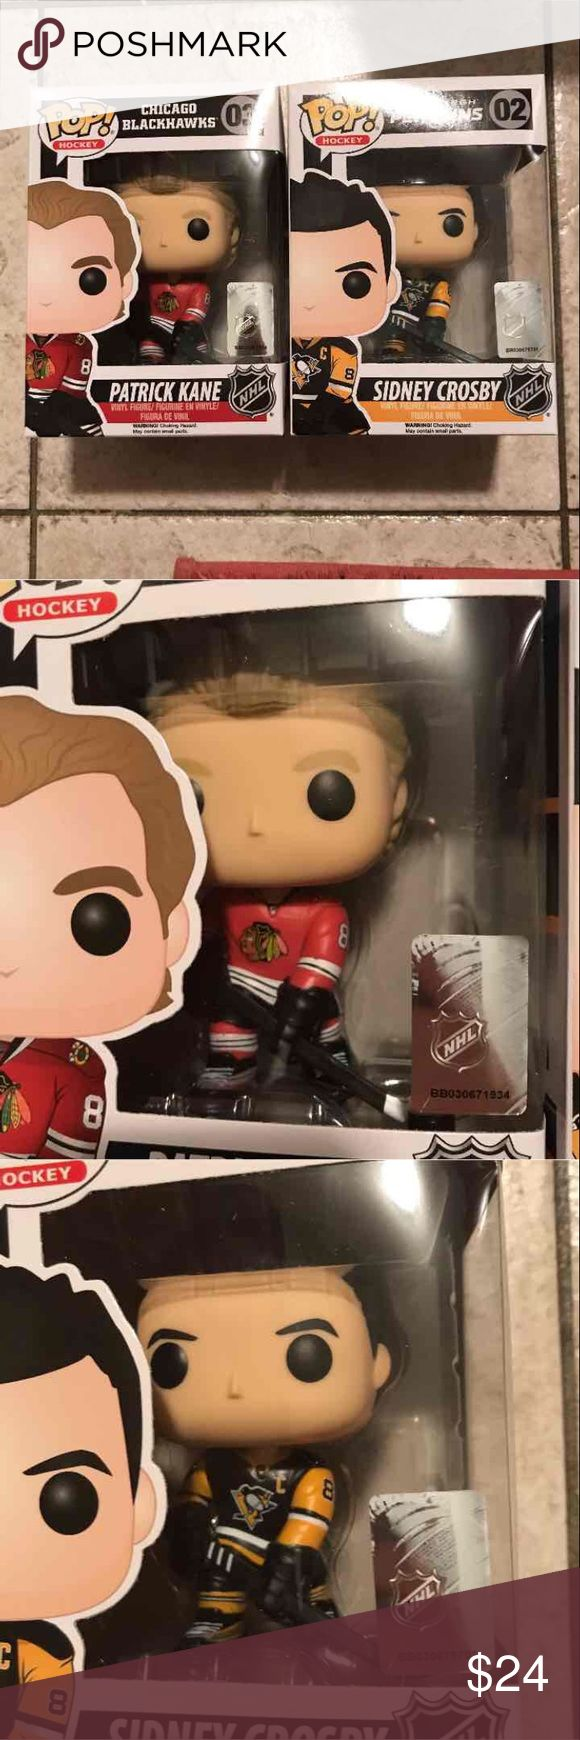 NHL Hockey Funko Pops X 2 (PlzRead) BRAND NEW IN BOX*NO Trades Price is Firm Slight bubbling of package from manufacturer*Please refer to photos Accessories